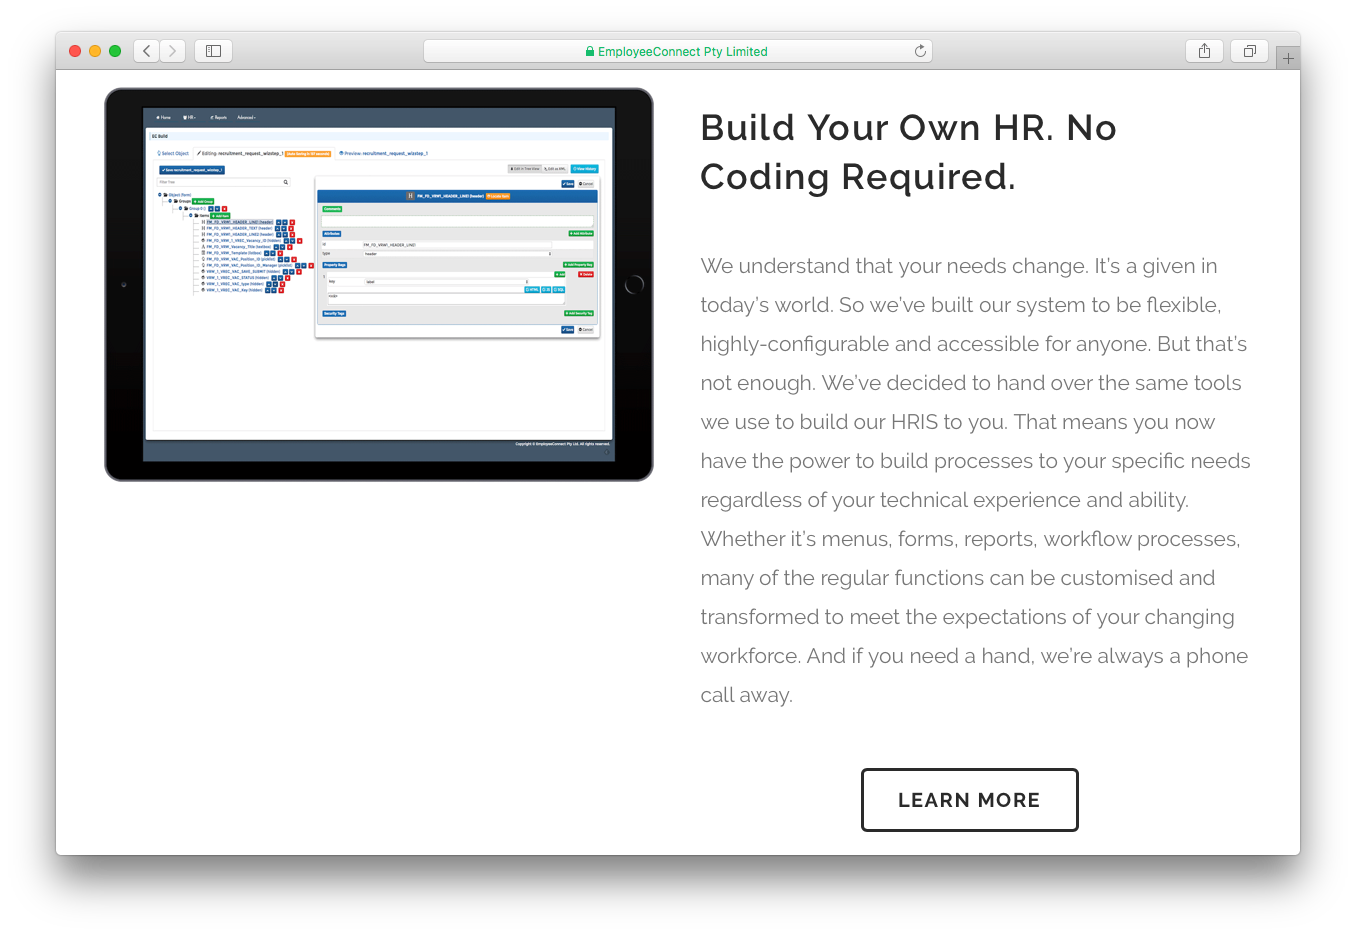 EmployeeConnect build own HR Human Resources no coding